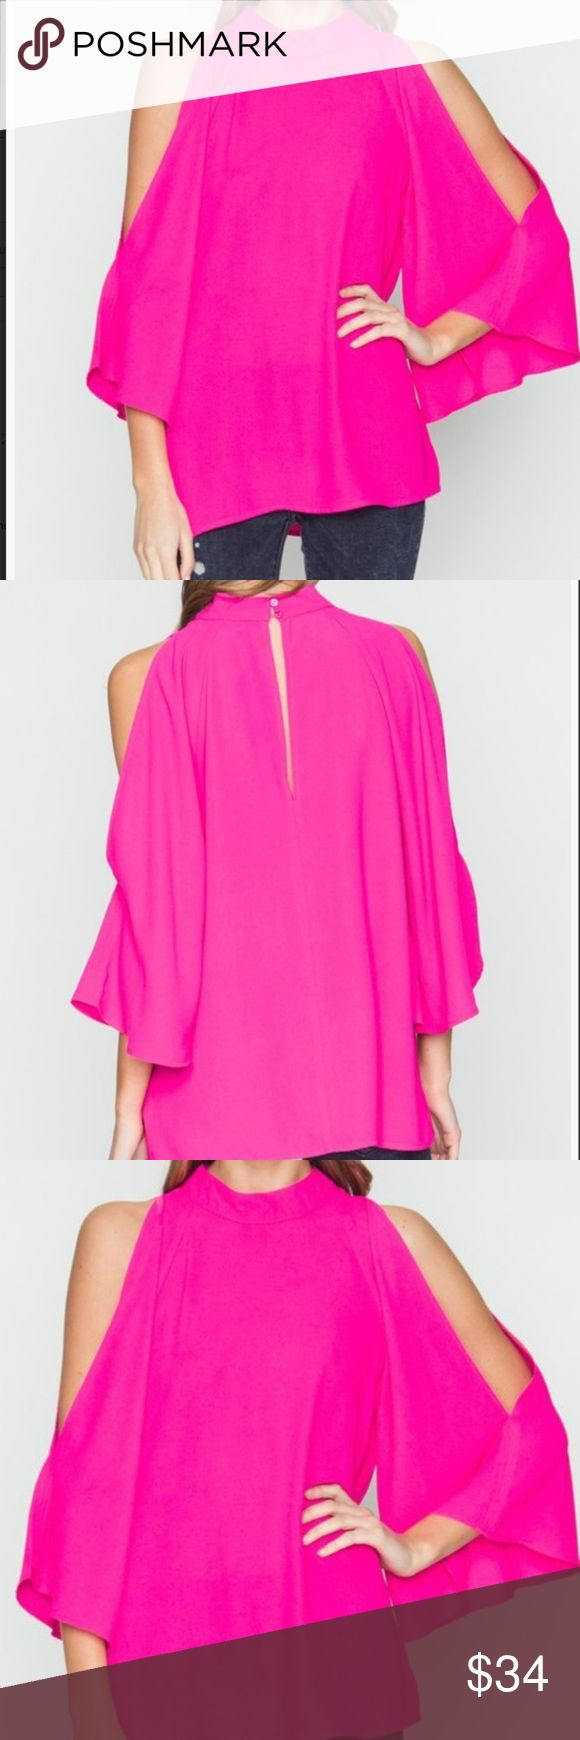 New w/tags Hot Pink Split Sleeve Blouse This hot pink blouse is the perfect pop of color for your wardrobe. Pair it with your favorite skinnies for an easy, breezy , chic look.  Description:  Hot pink cold shoulder blouse with split sleeve and exposed shoulders  Button closure at back of neck  100% Polyester Very J Tops Blouses